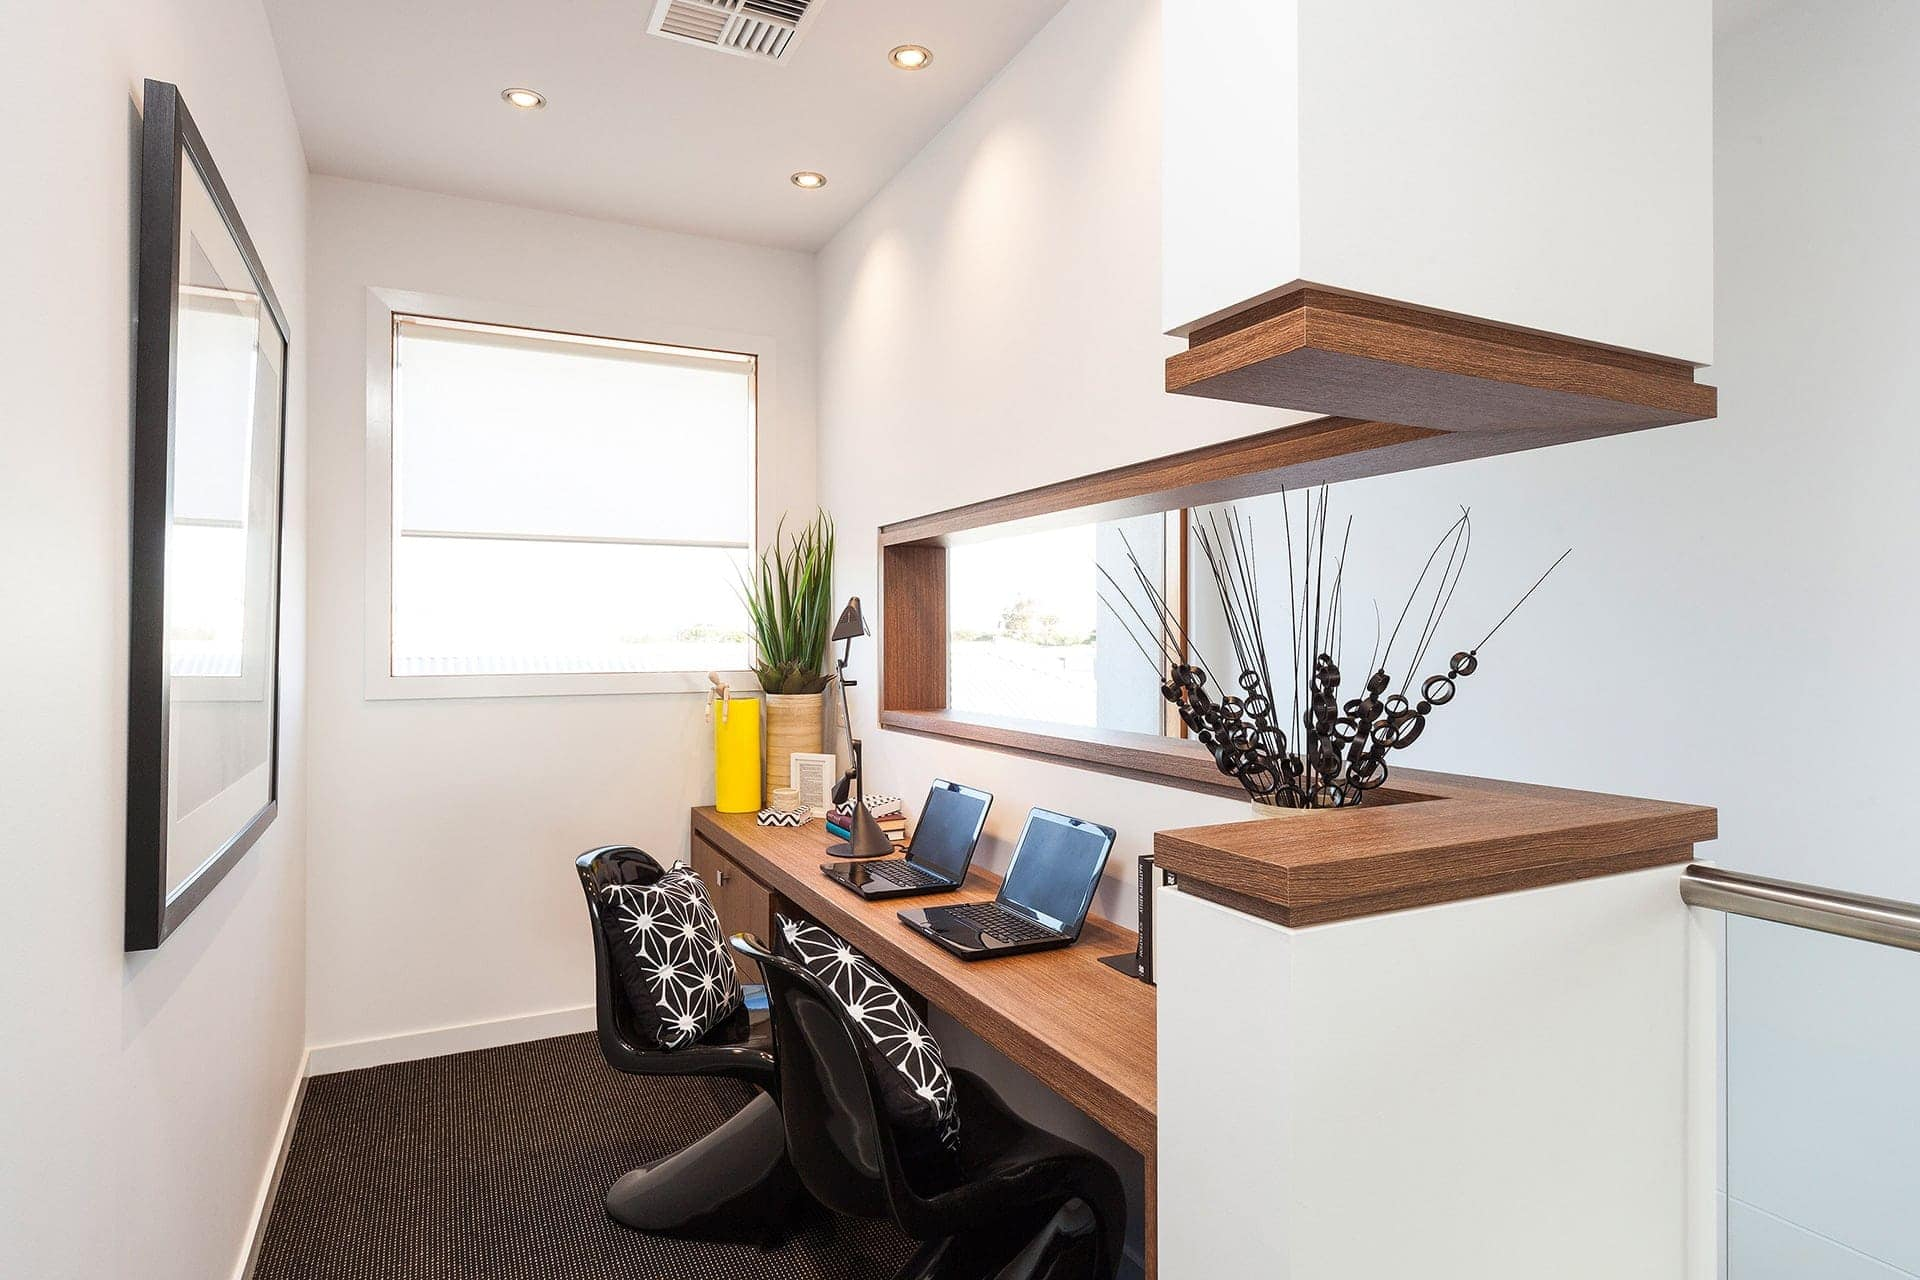 built in study nook home office zone at top of stairs in metricon display home